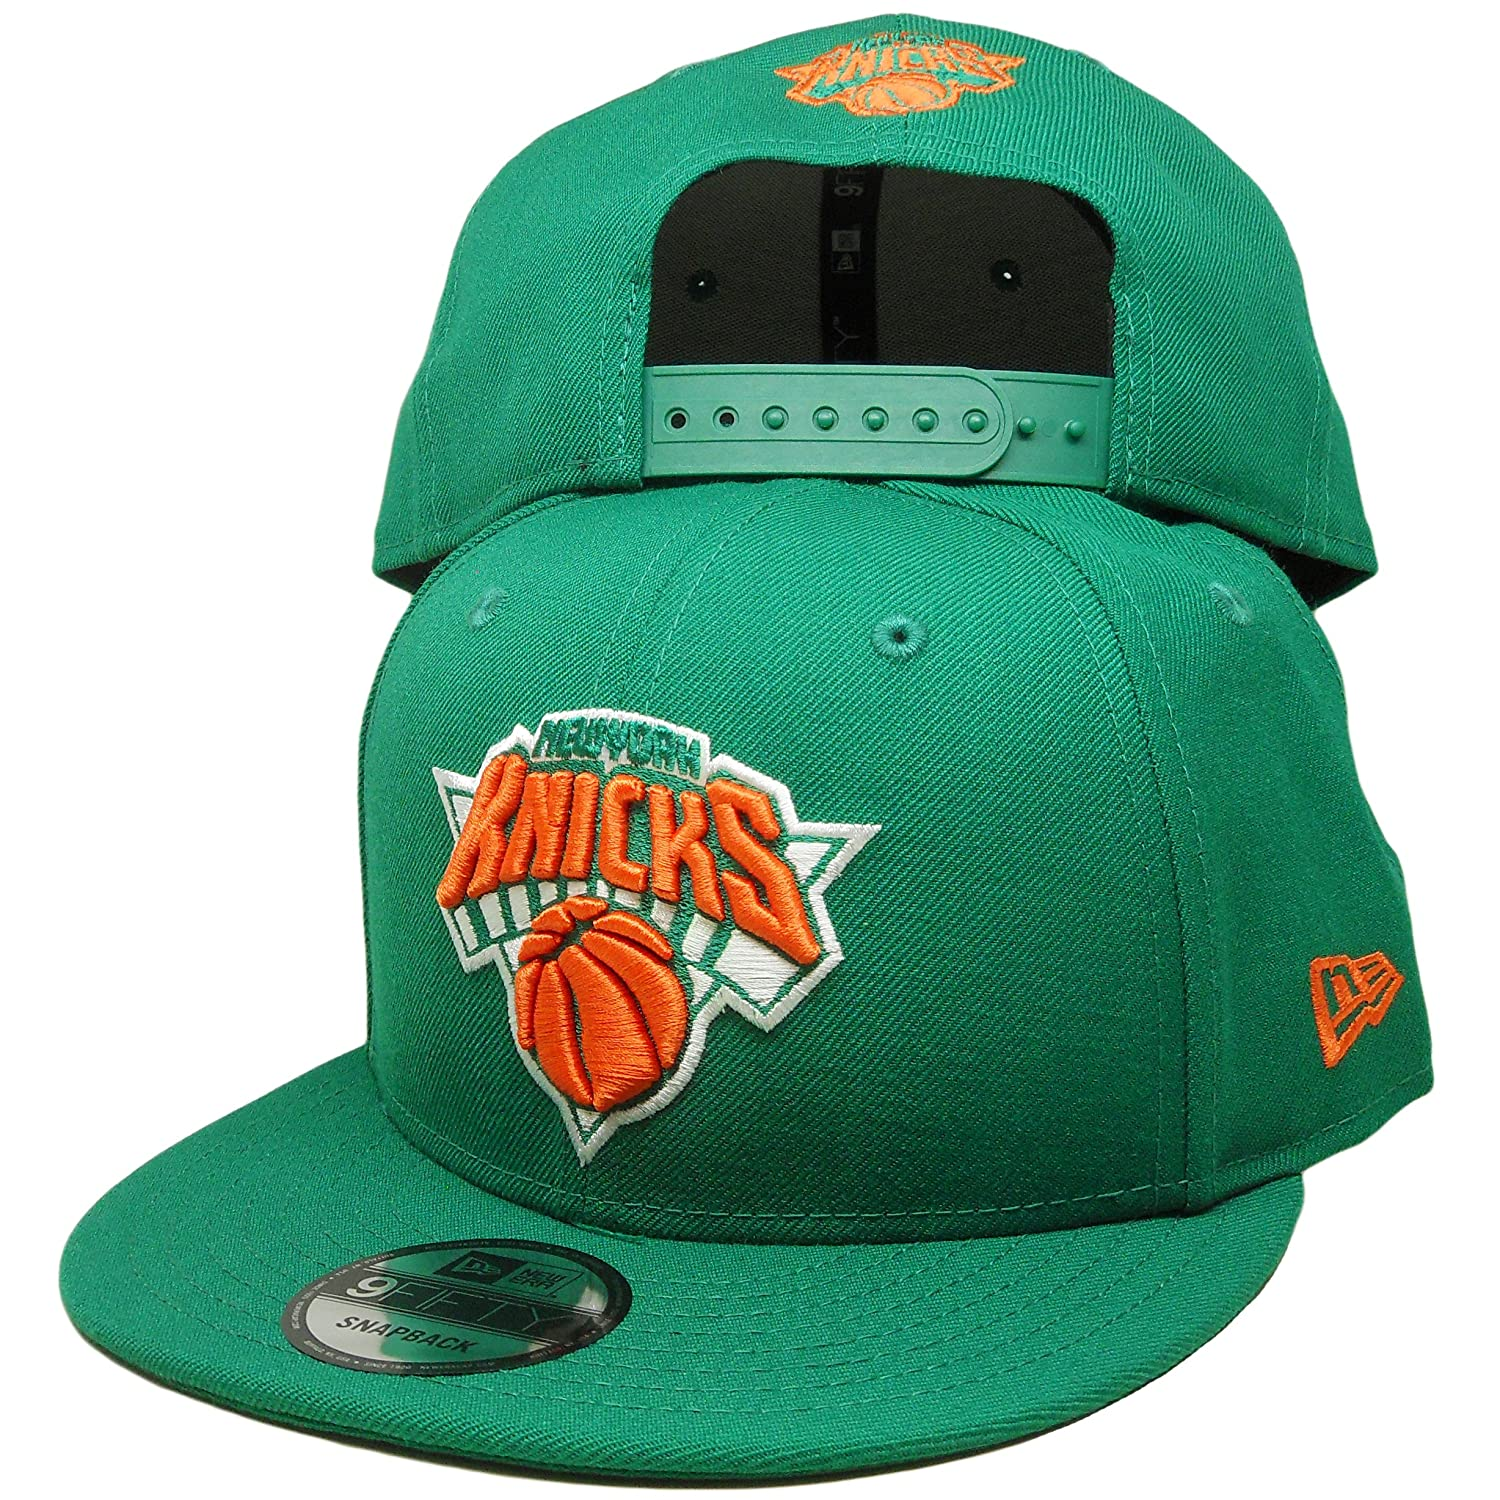 293bde32 New York Knicks New Era Custom 9Fifty Snapback Hat to match Air Jordan 6  Gatorade: Amazon.co.uk: Sports & Outdoors